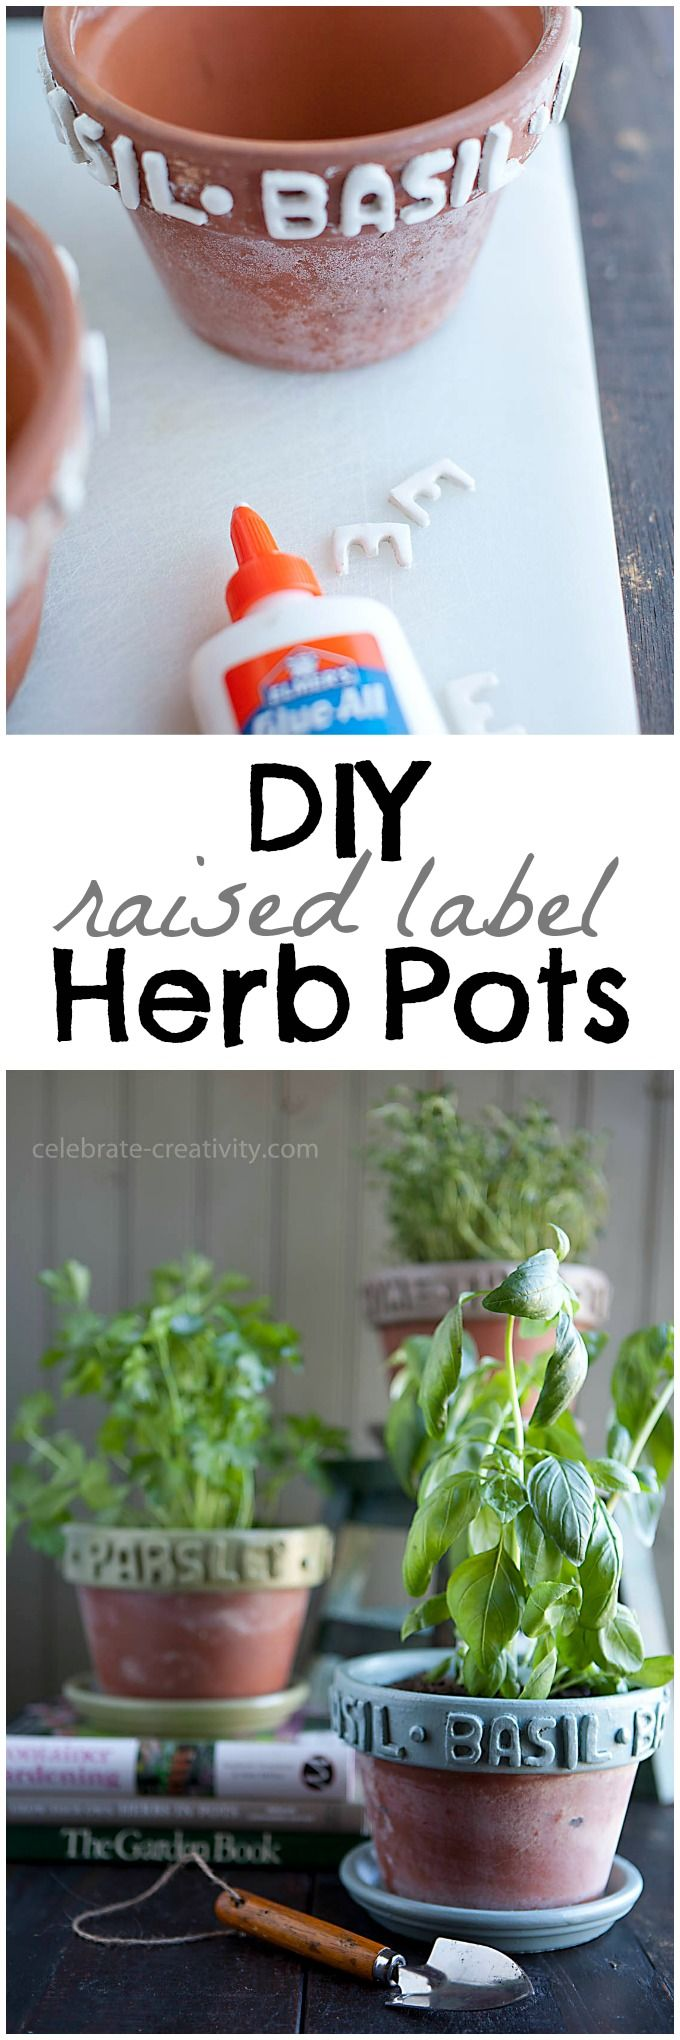 These DIY Raised Label Herb Pots are inexpensive and such a cute way to grow herbs! featured on Ella Claire